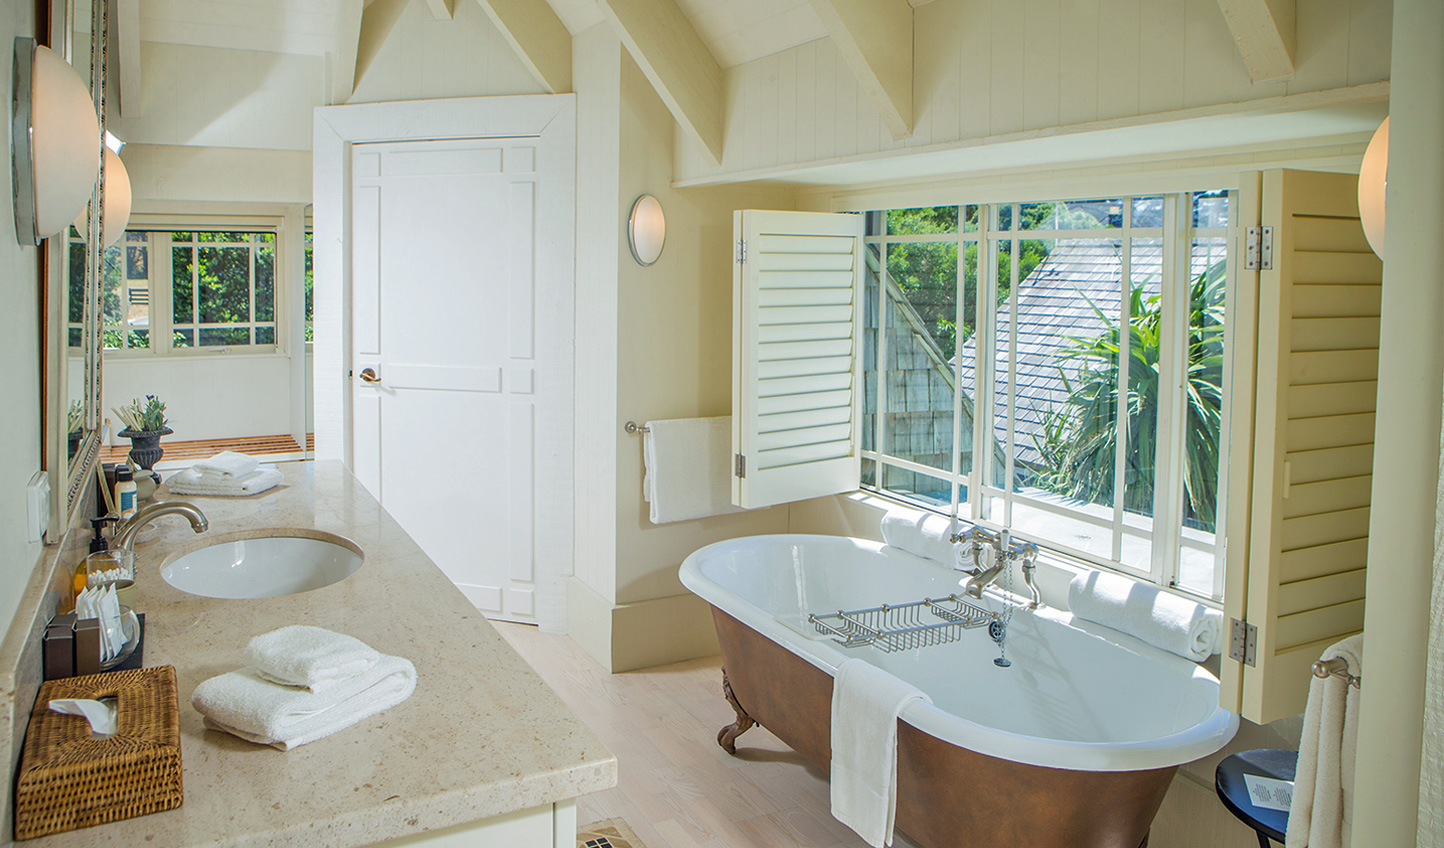 Sink into the bath tub and bask in the sunlight steaming in through the window